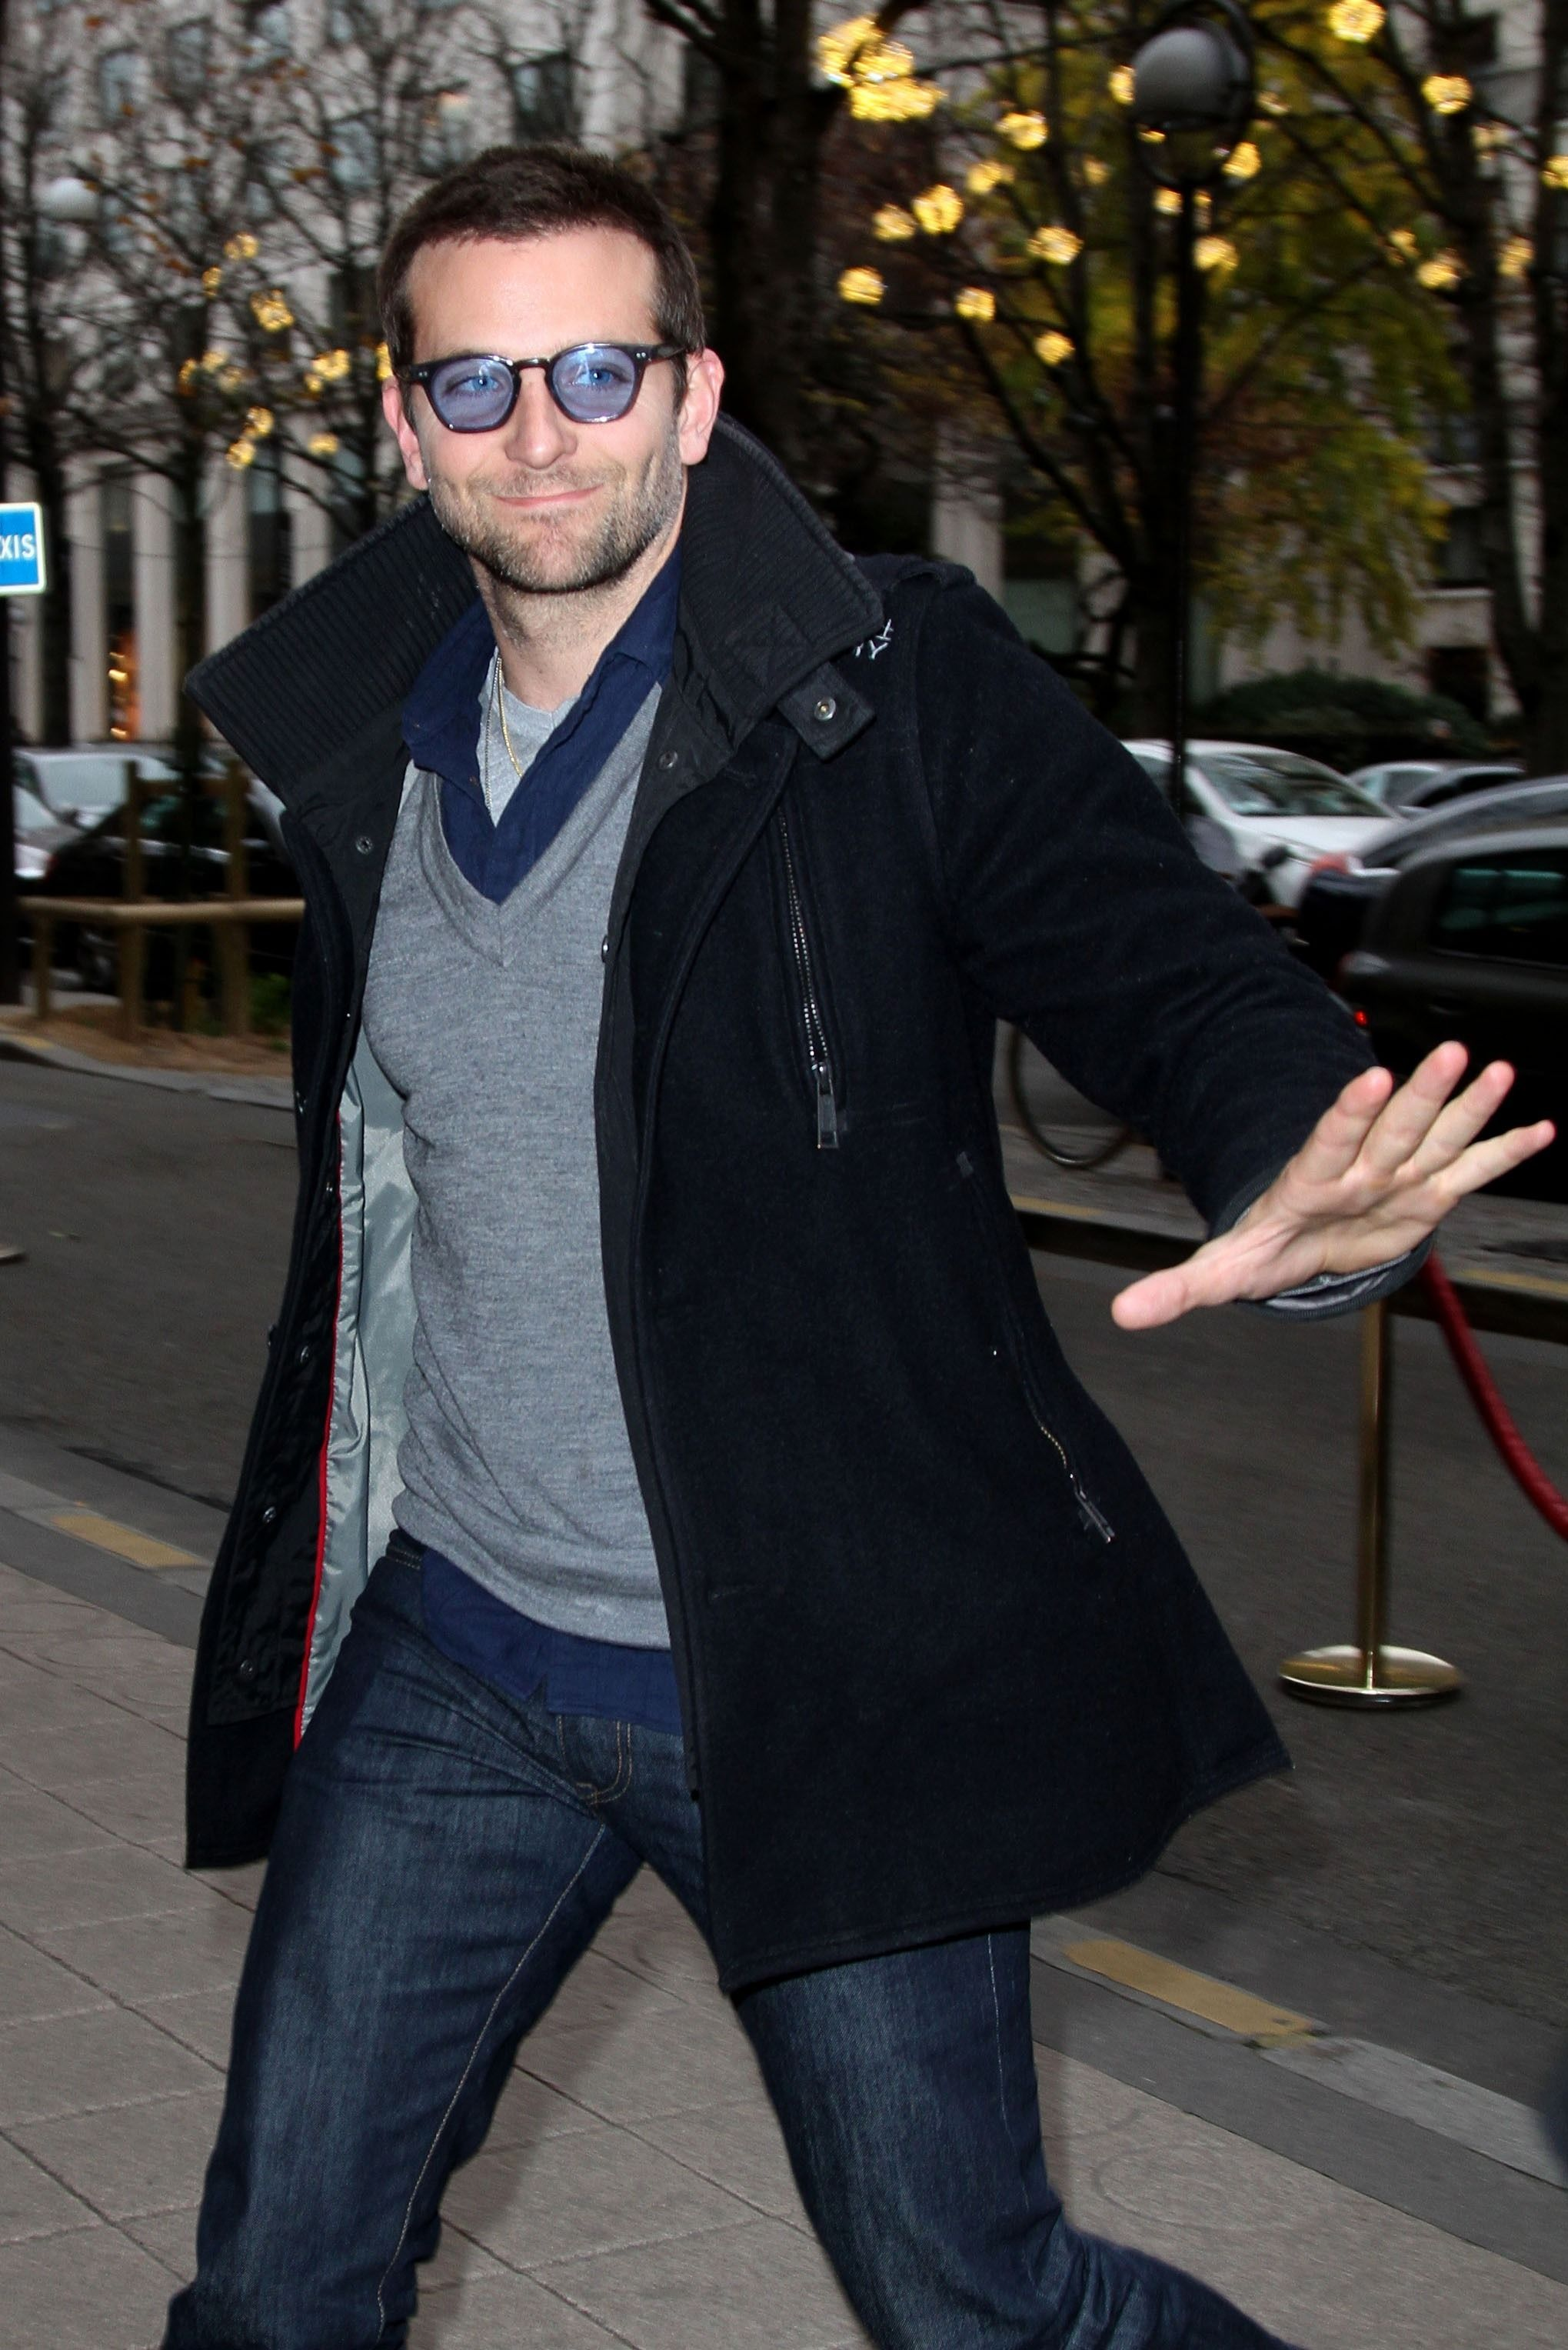 Bradley Cooper In The Superdry Premier Pea Trench Coat Mens Jackets Casual Casual Jacket Trench Coat [ 3055 x 2039 Pixel ]